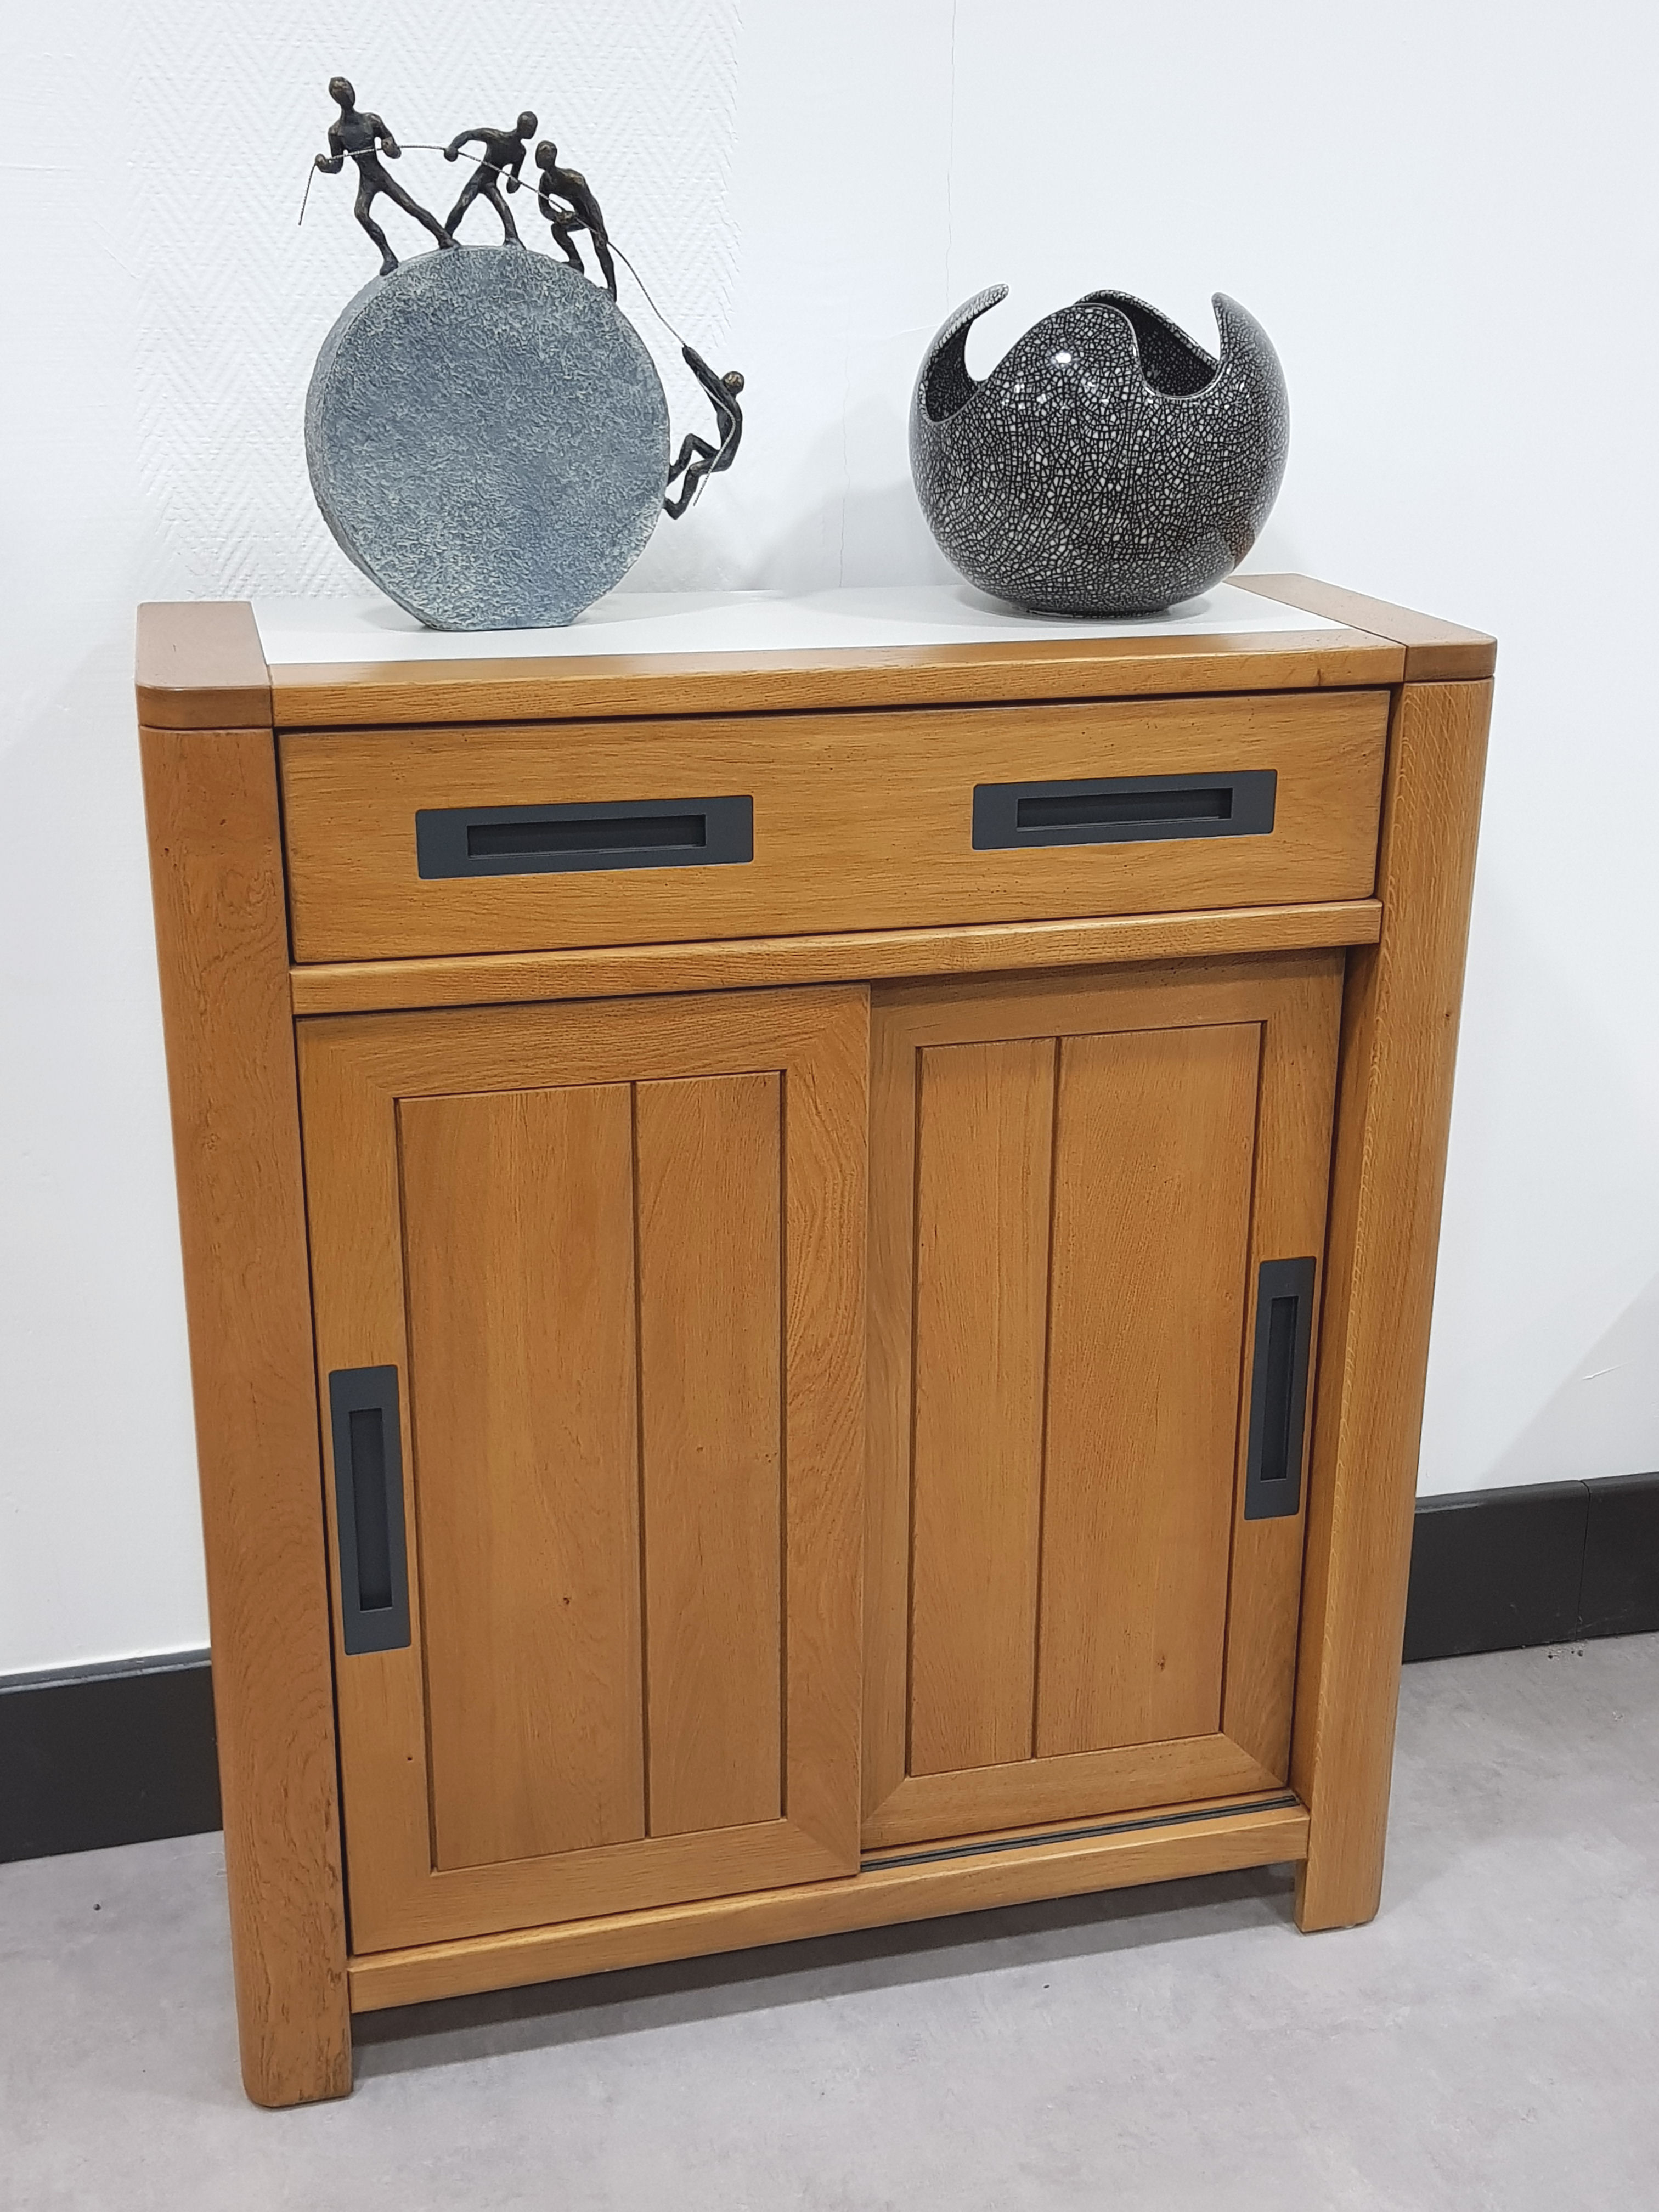 Petite commode moderne